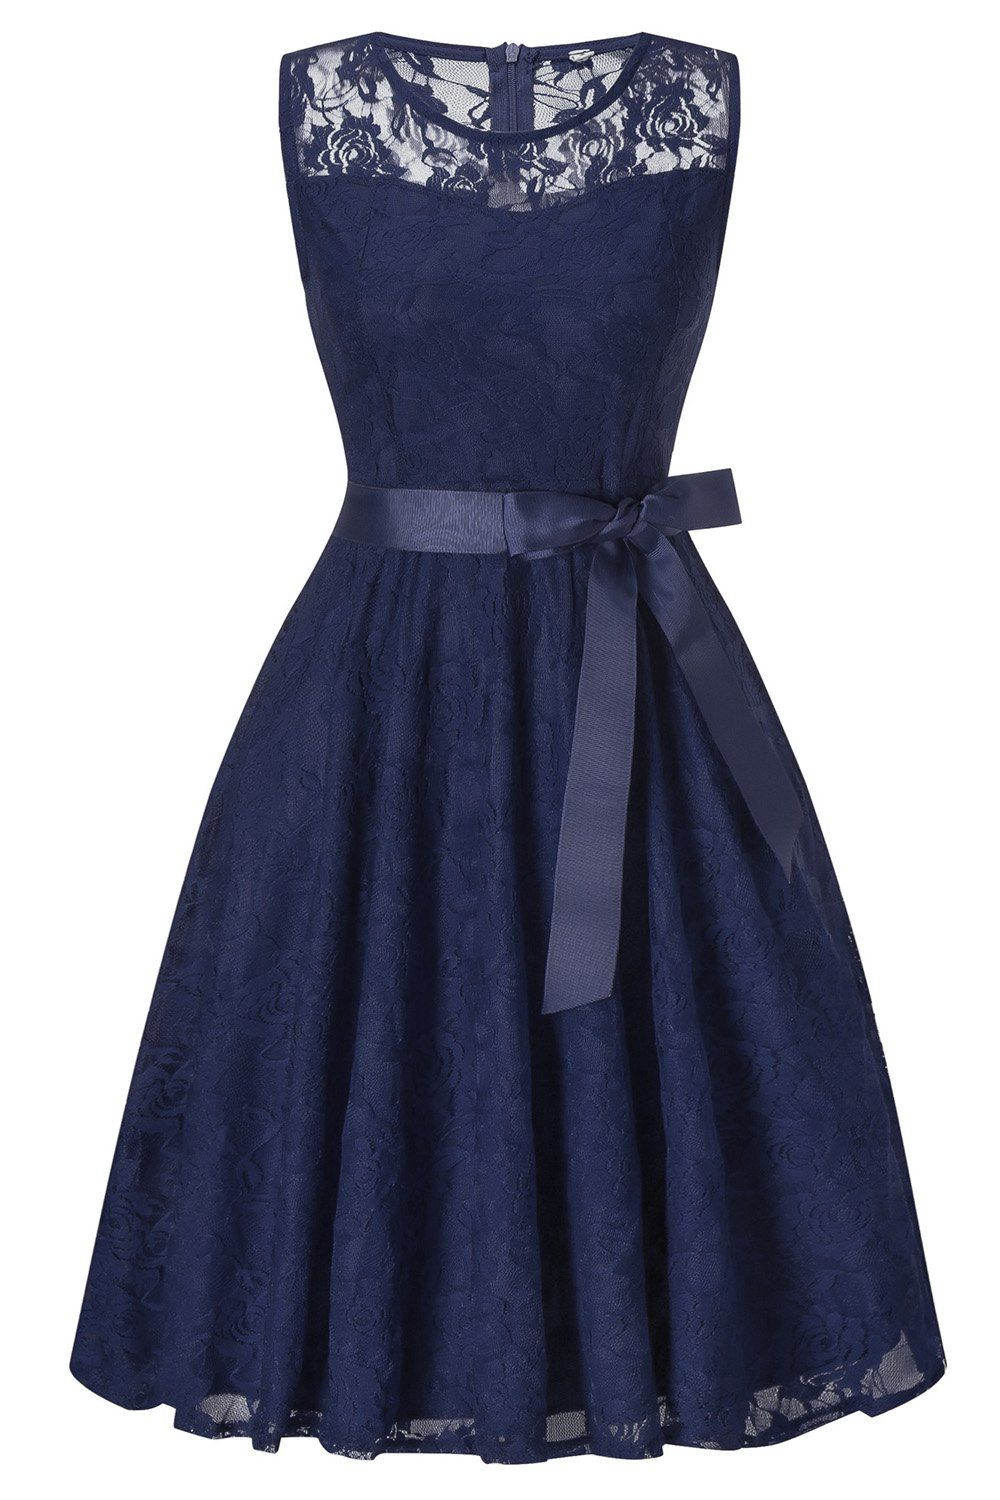 MisShow Damen Elegant Spitzen Rockabilly Abi Ball Kleid